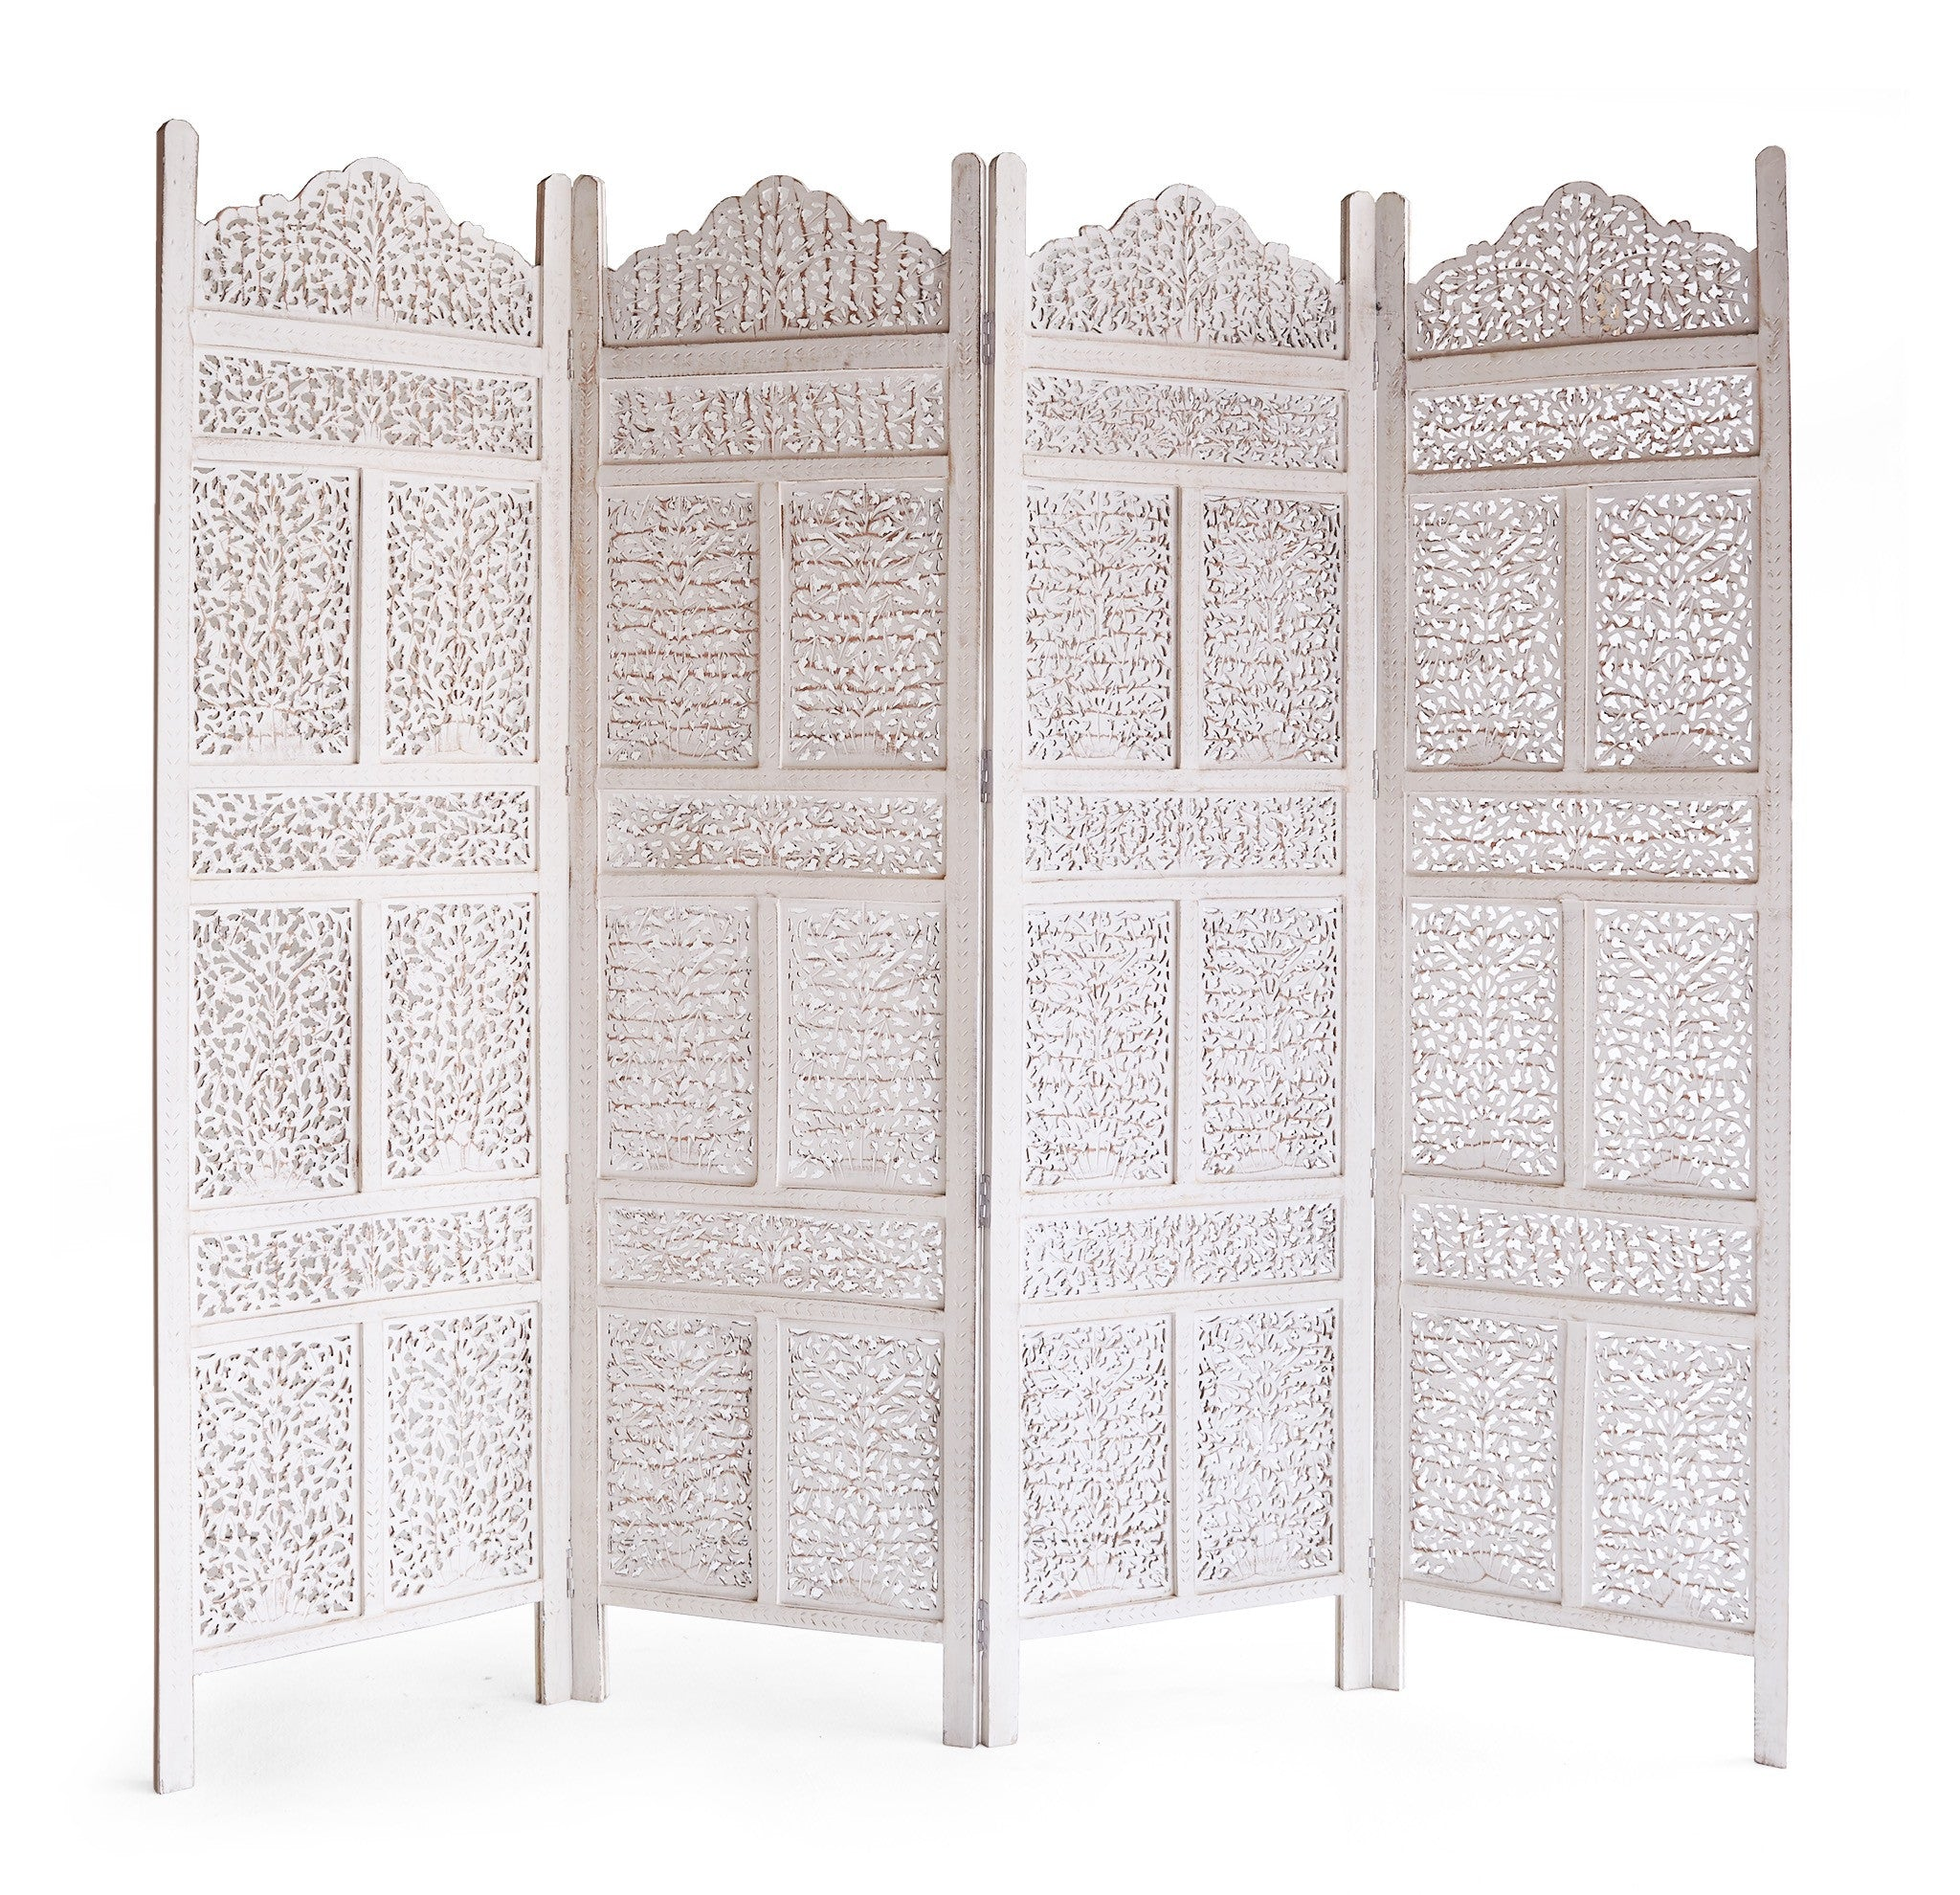 Floral Room Divider | White 4 Panel-Nomad India-Originals Furniture - 2